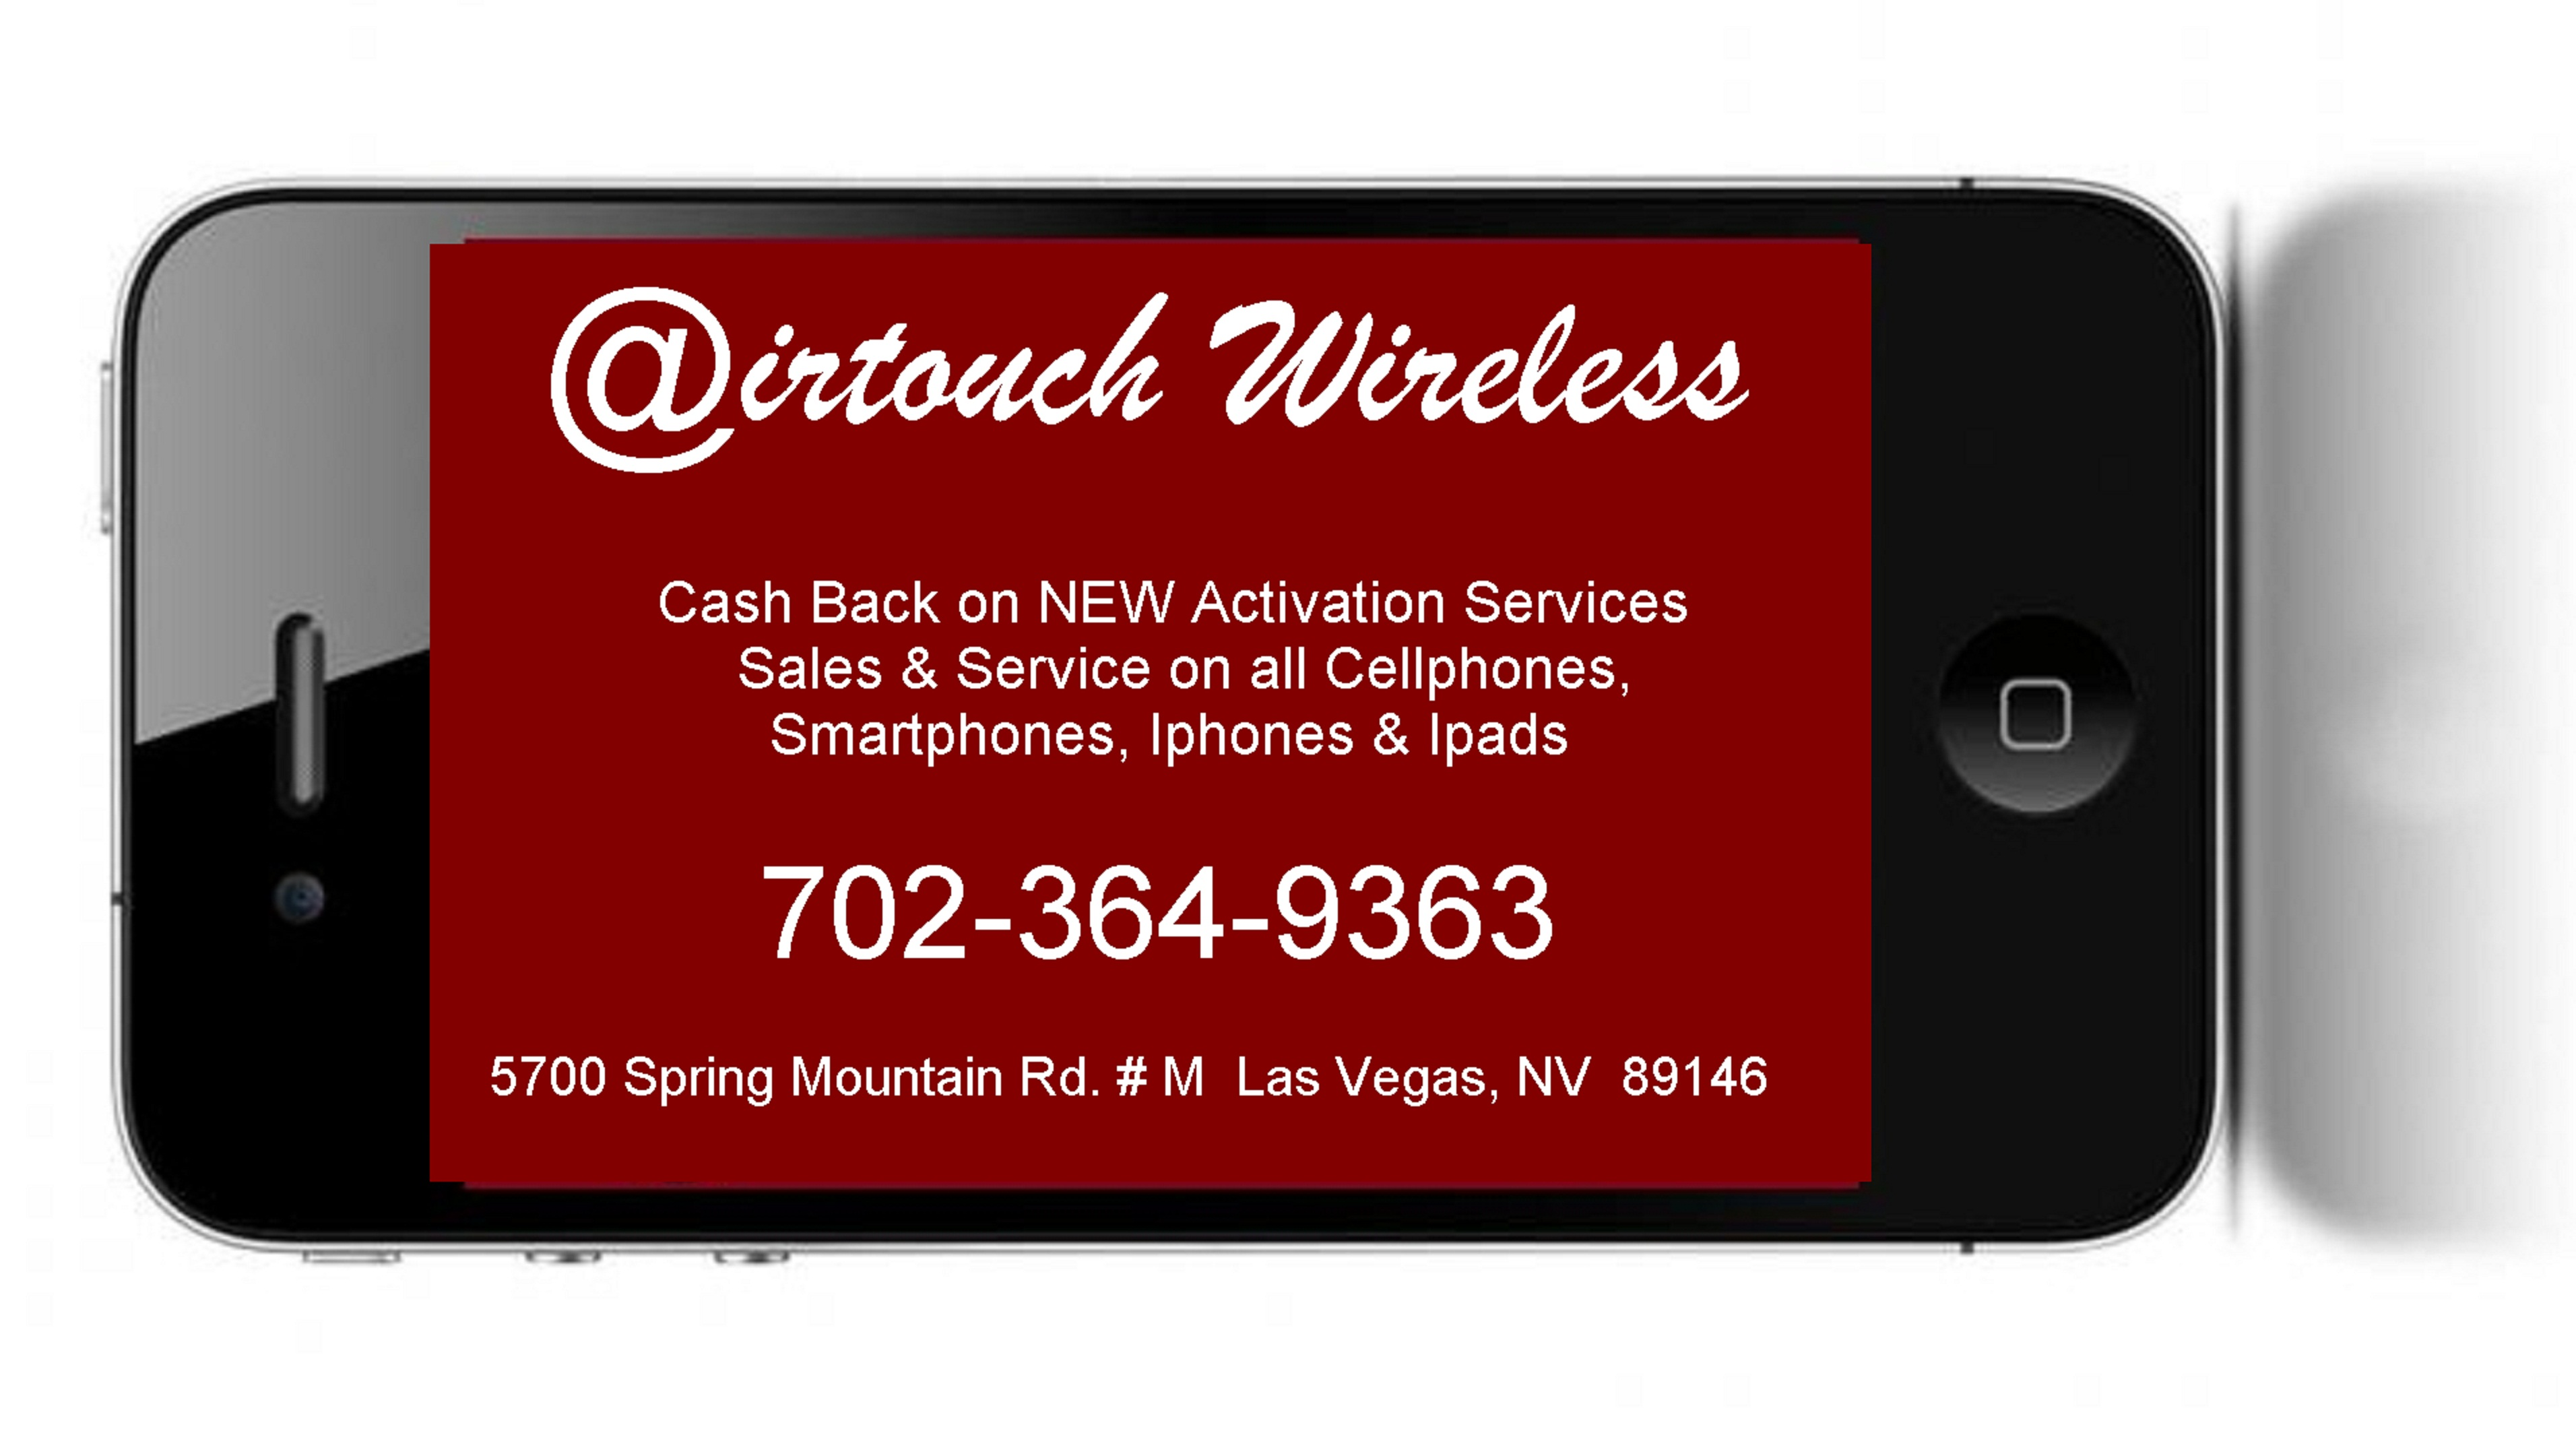 Airtouch Wireless